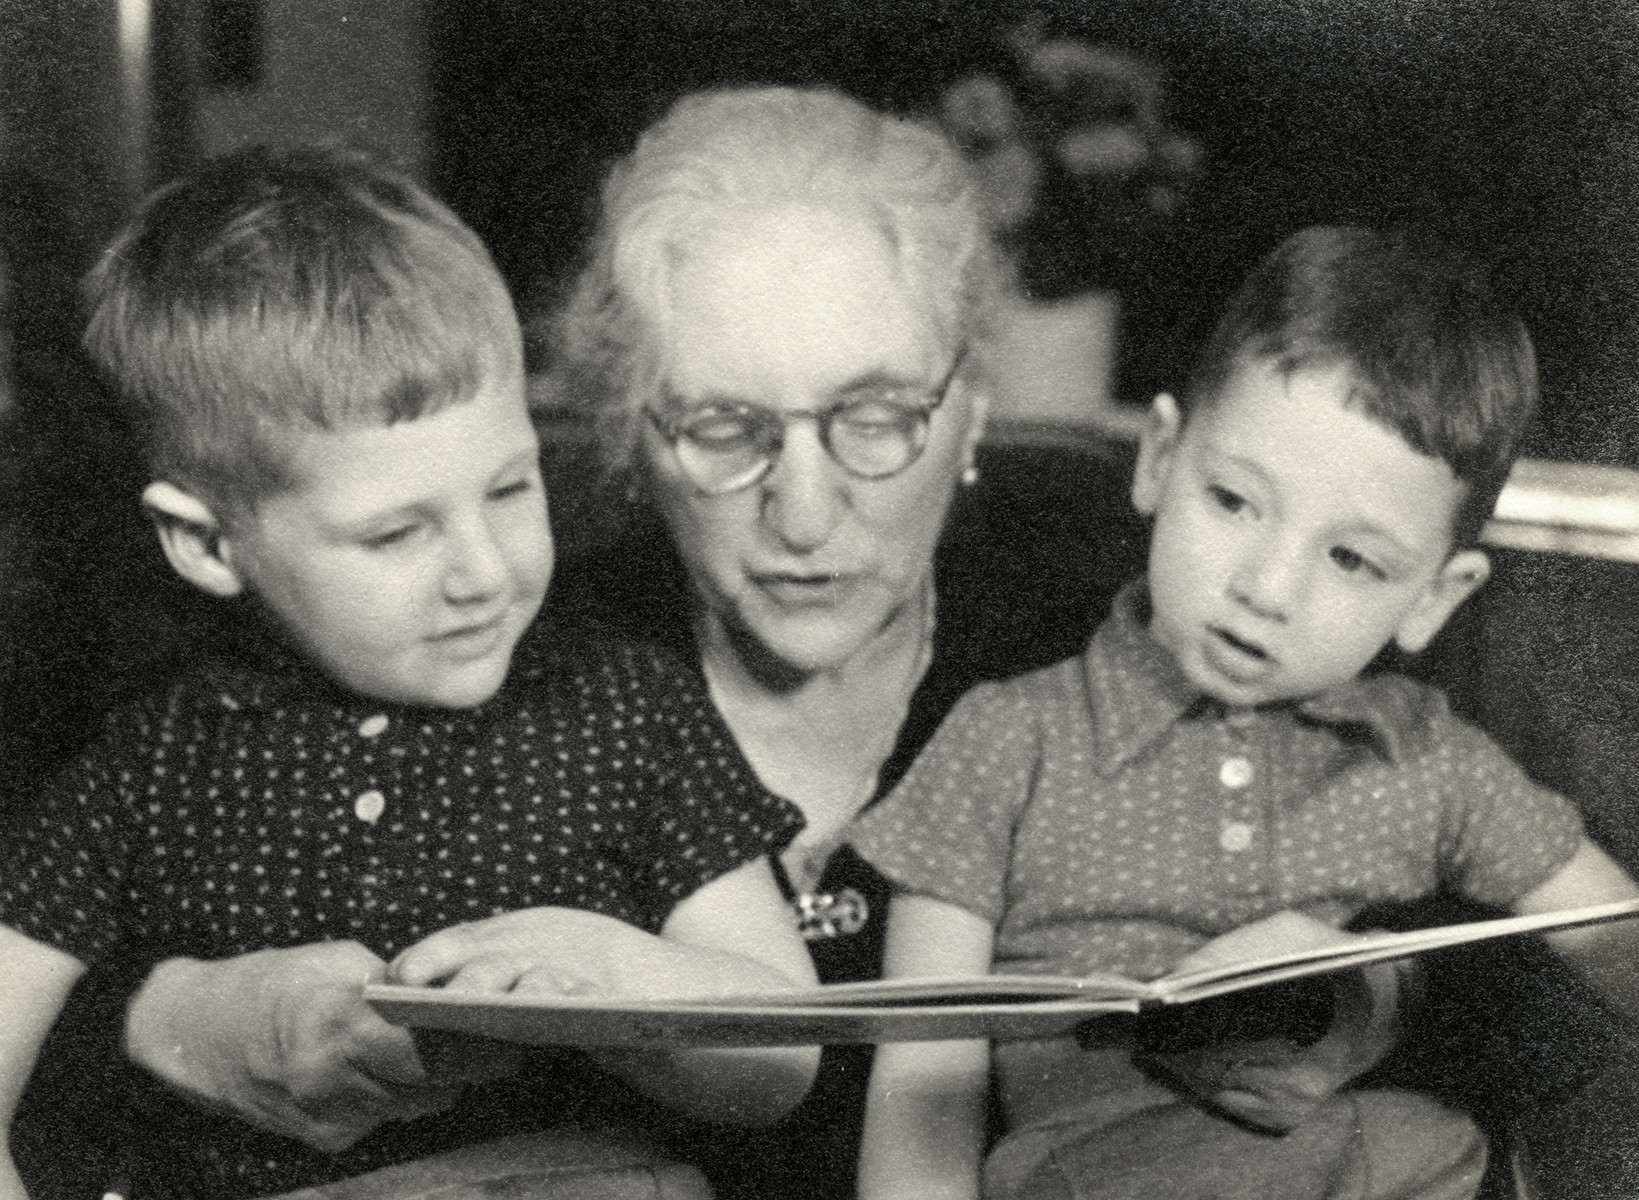 Hanan and Eldad Kisch sit on their grandmother's lap and listen to her read a book.